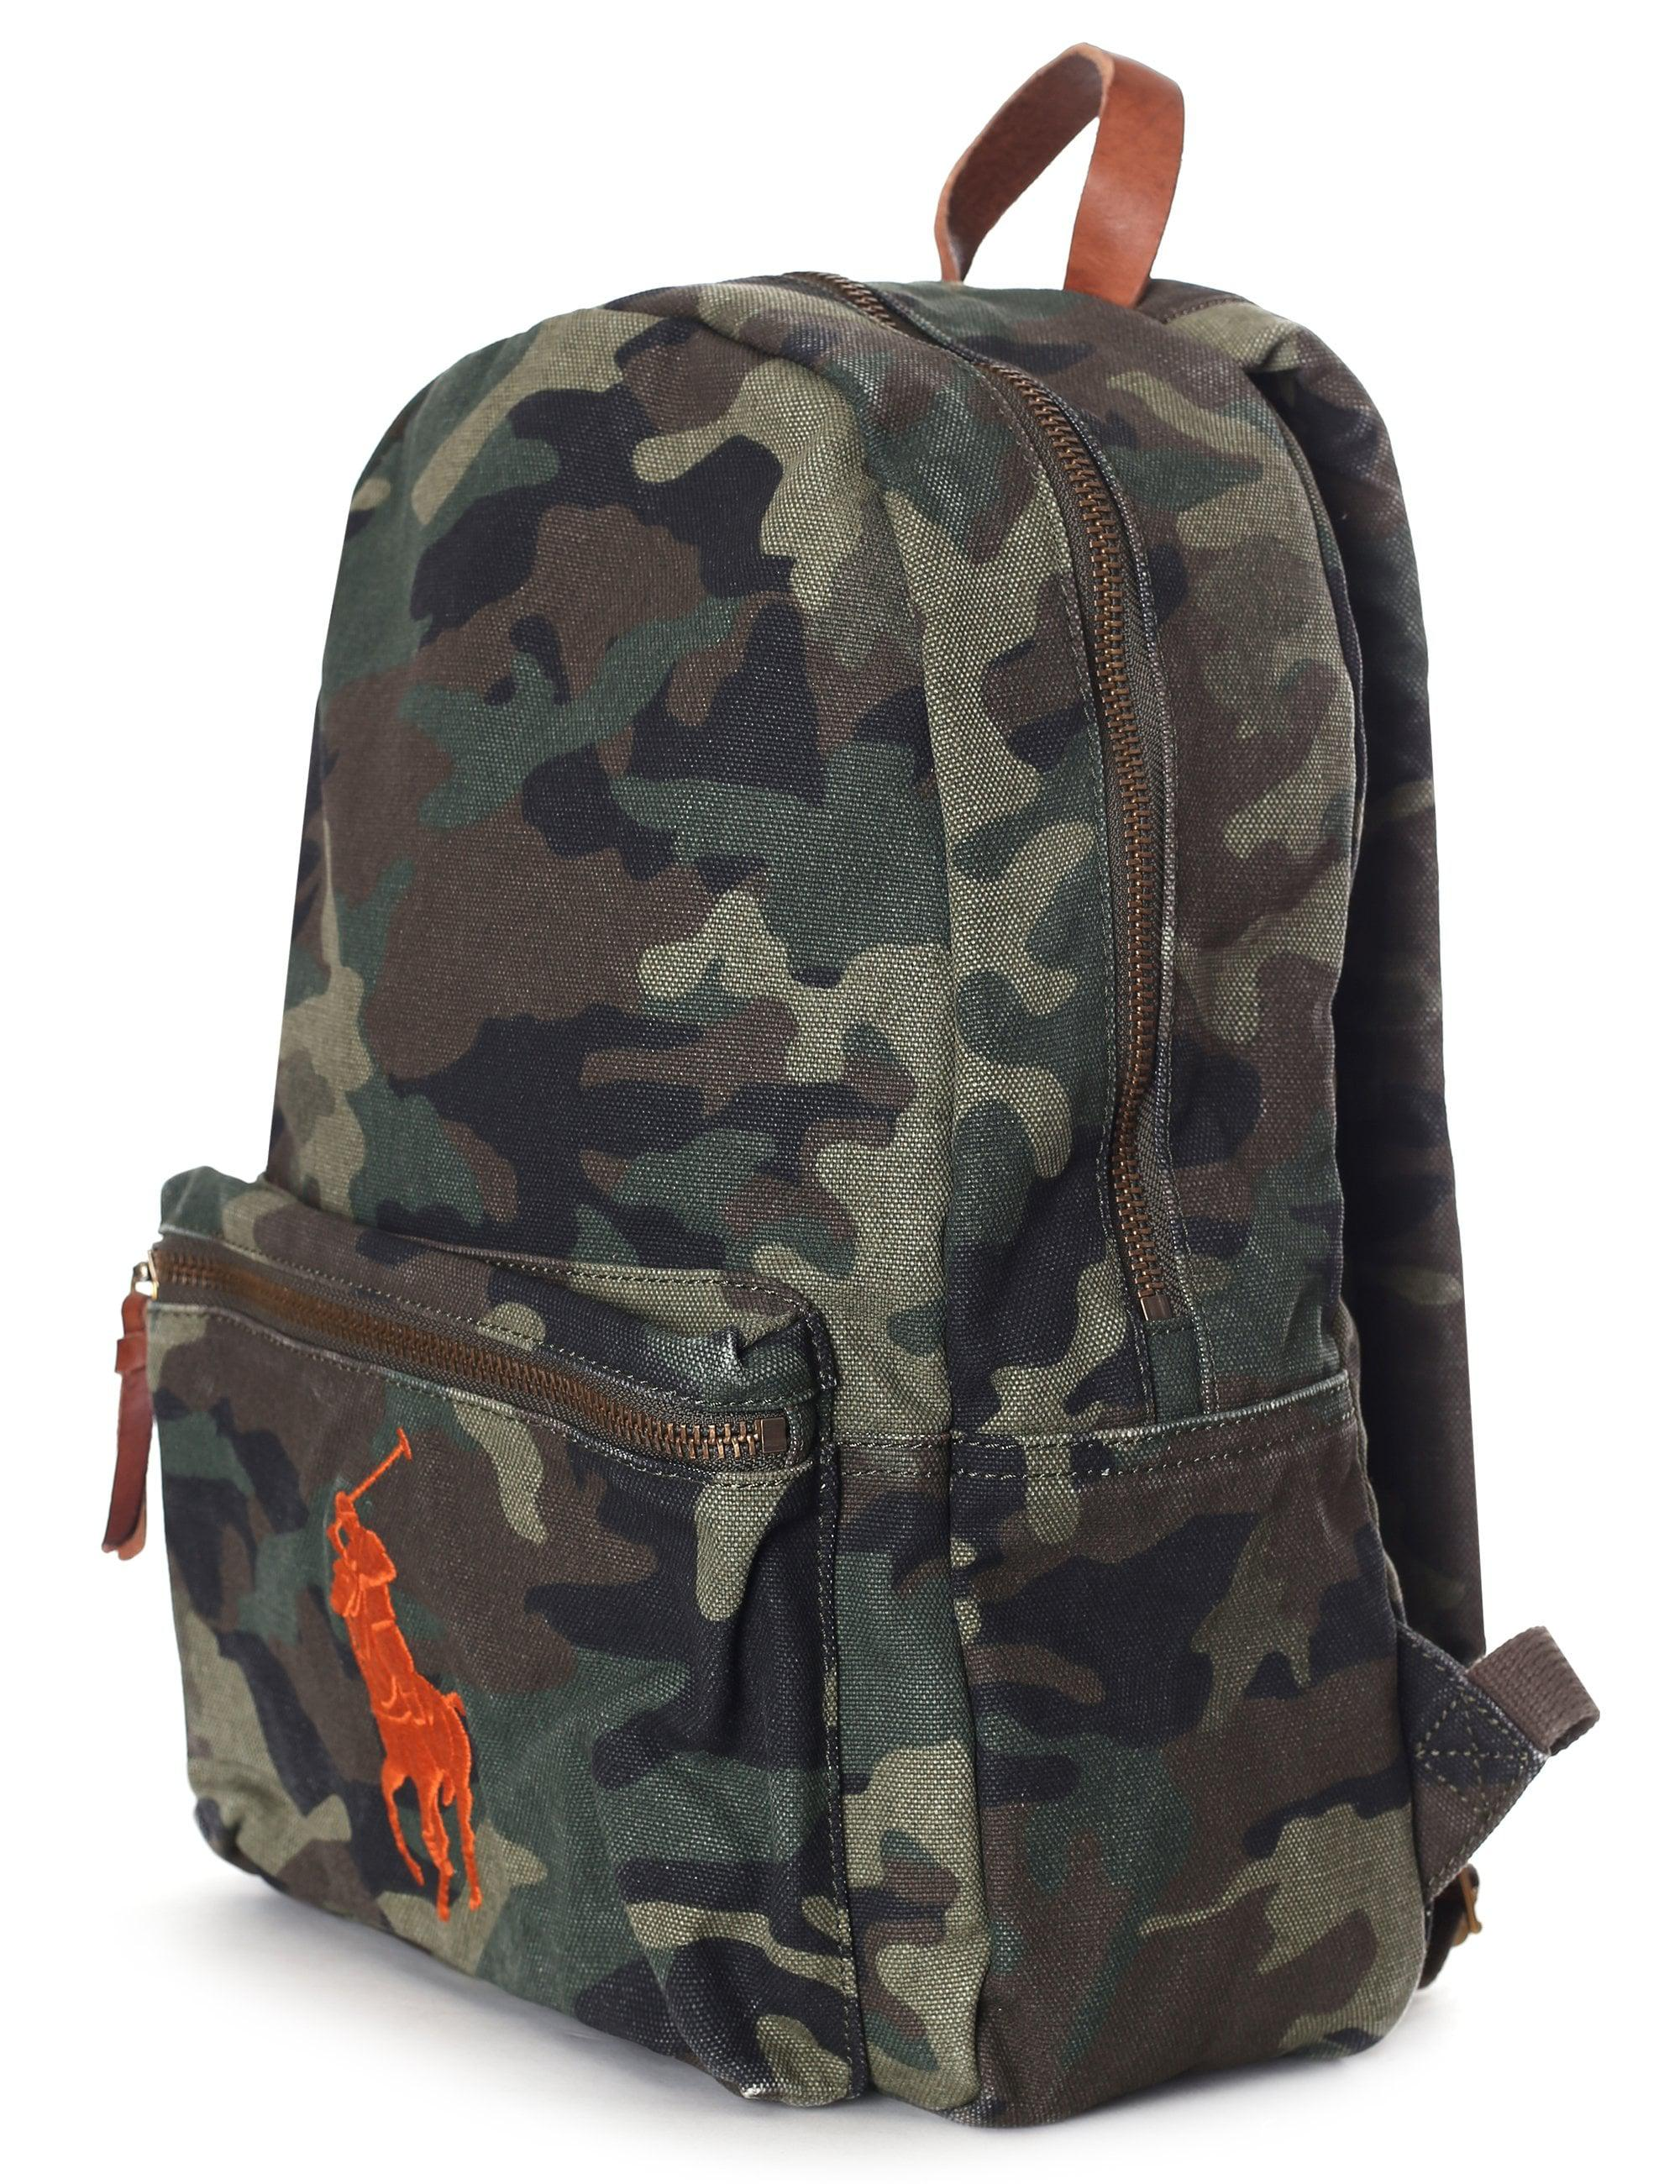 Polo Ralph Lauren Men s Medium Backpack Multi for Men - Lyst f2d74ccb44